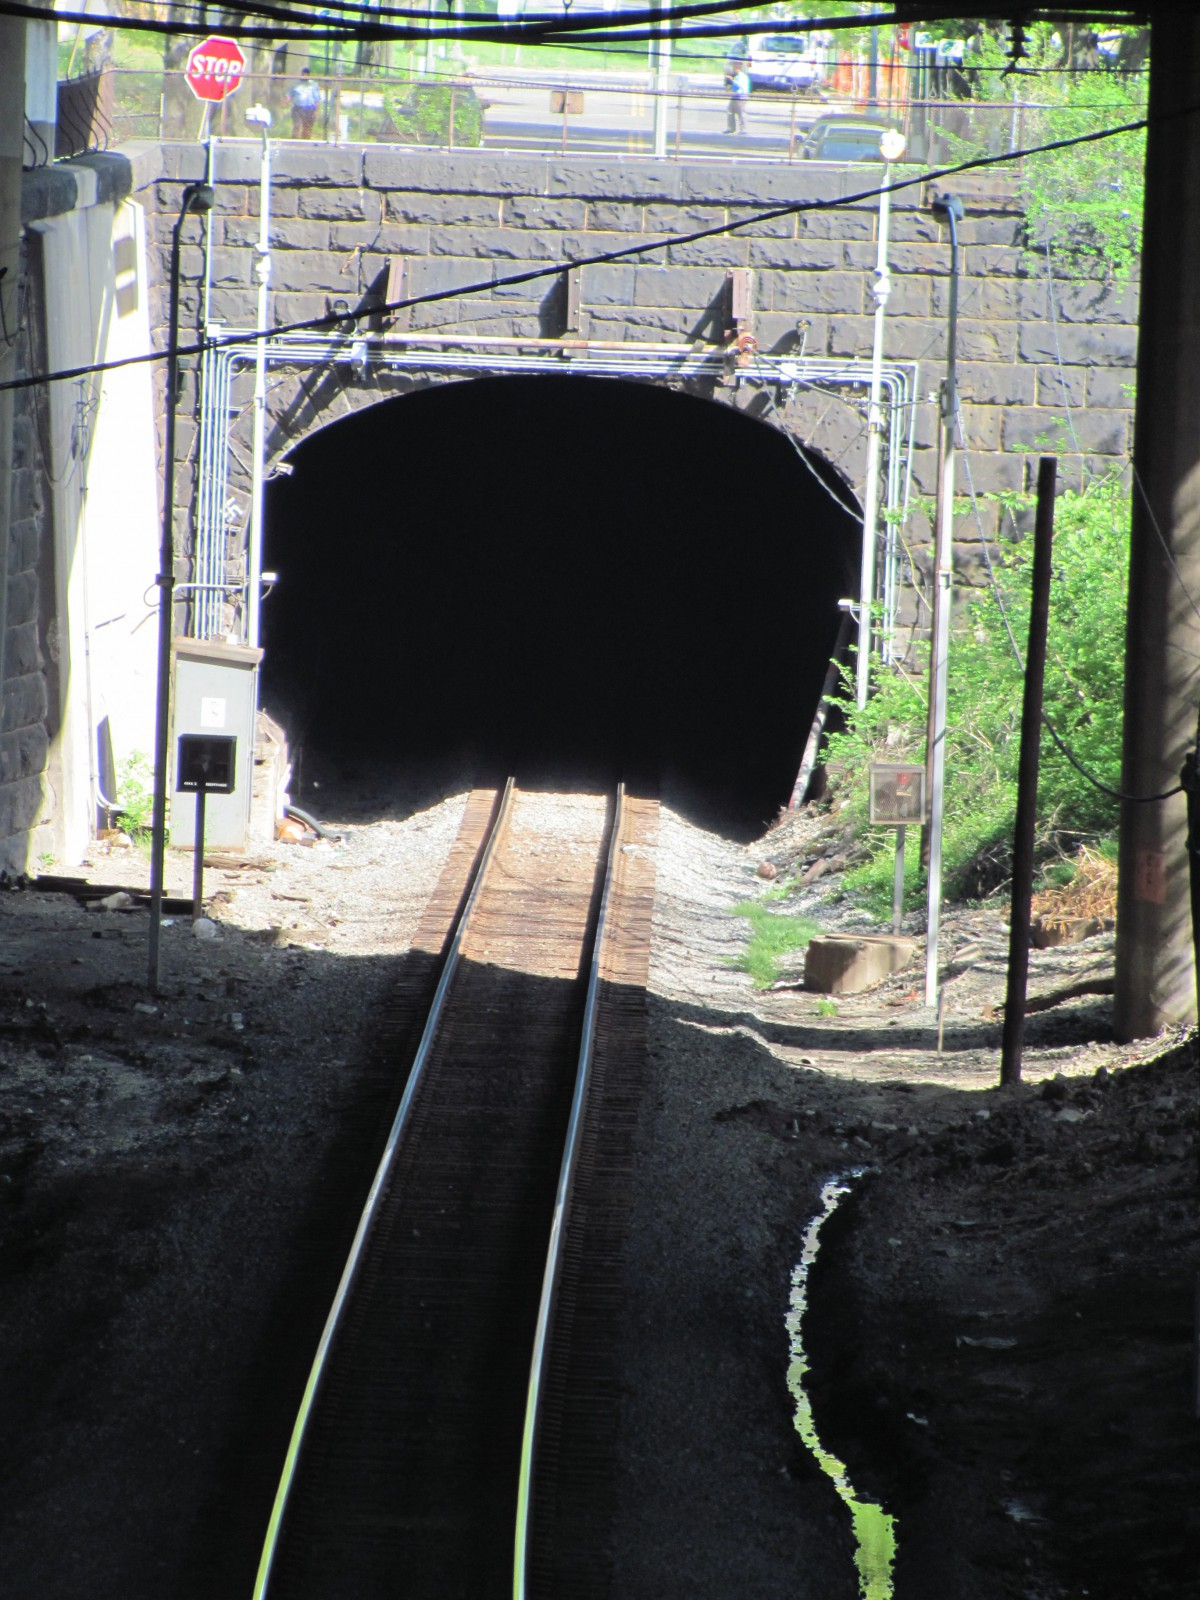 Csx Plans For Virginia Avenue Tunnel Replacement Greater